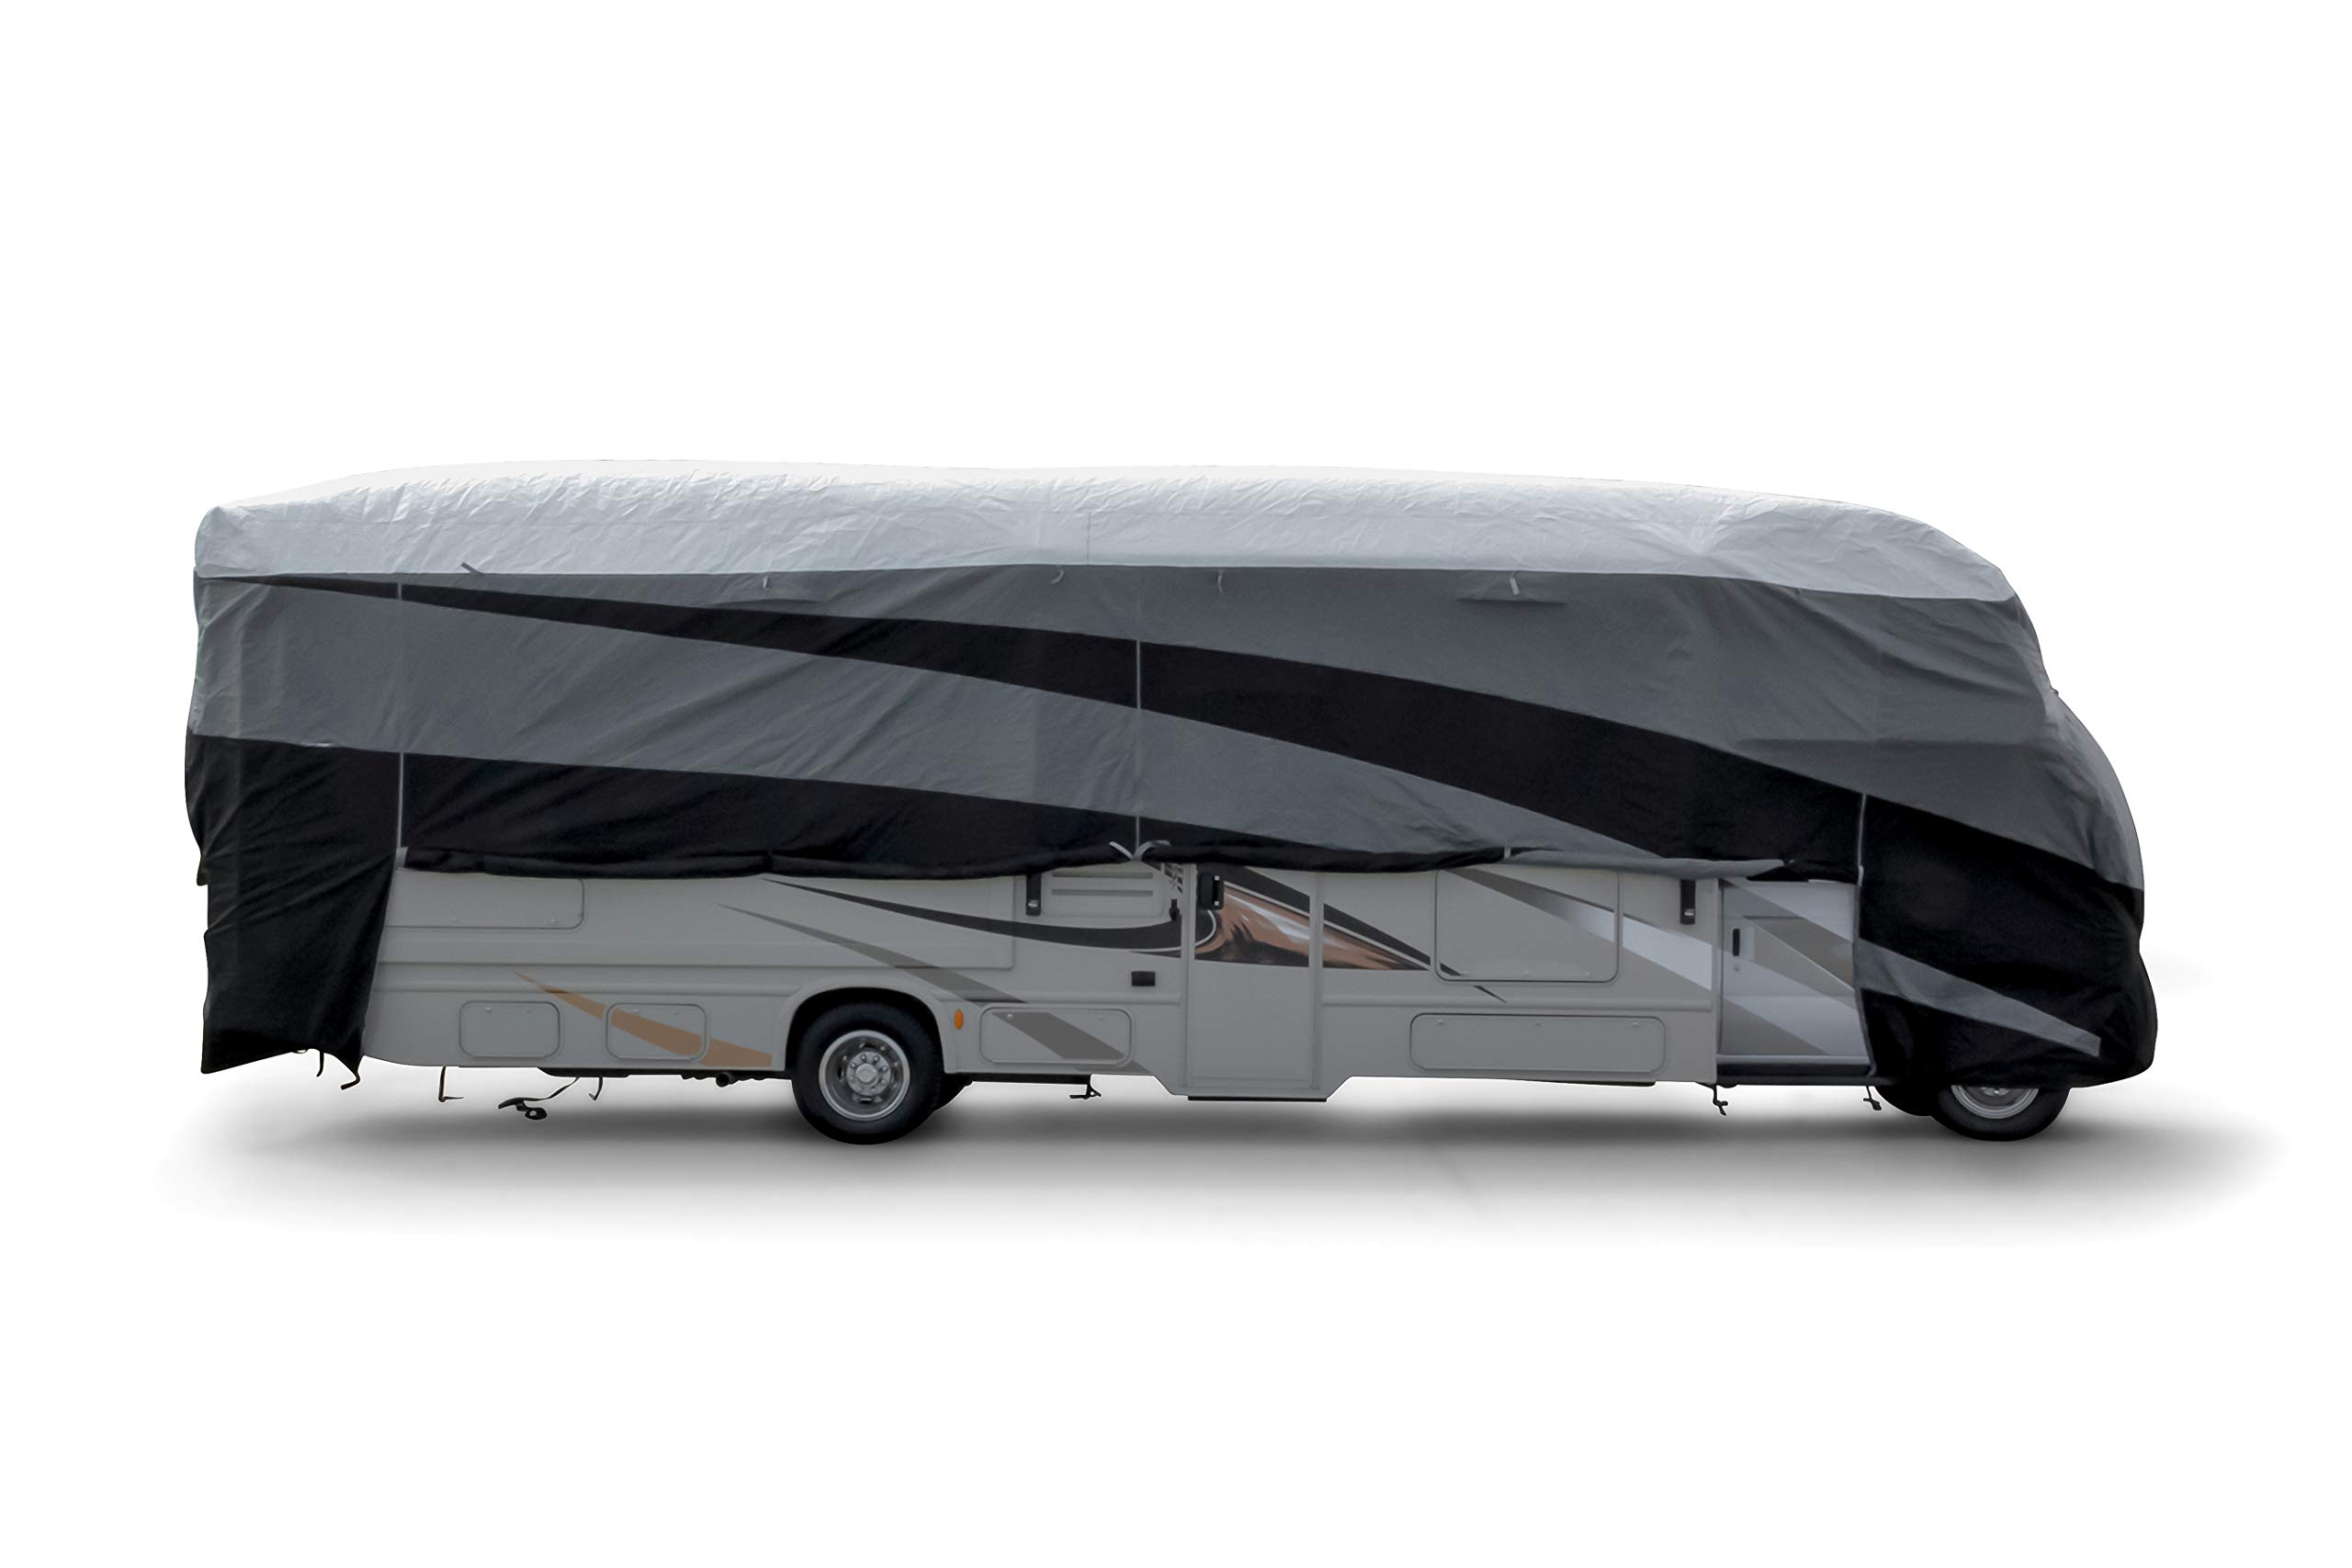 Camco ULTRAGuard Supreme Cover-Extremely Durable Design Fits Class C Model RVs 23' -26', Weatherproof with UV Protection and Dupont Tyvek Top (56114) by Camco (Image #5)